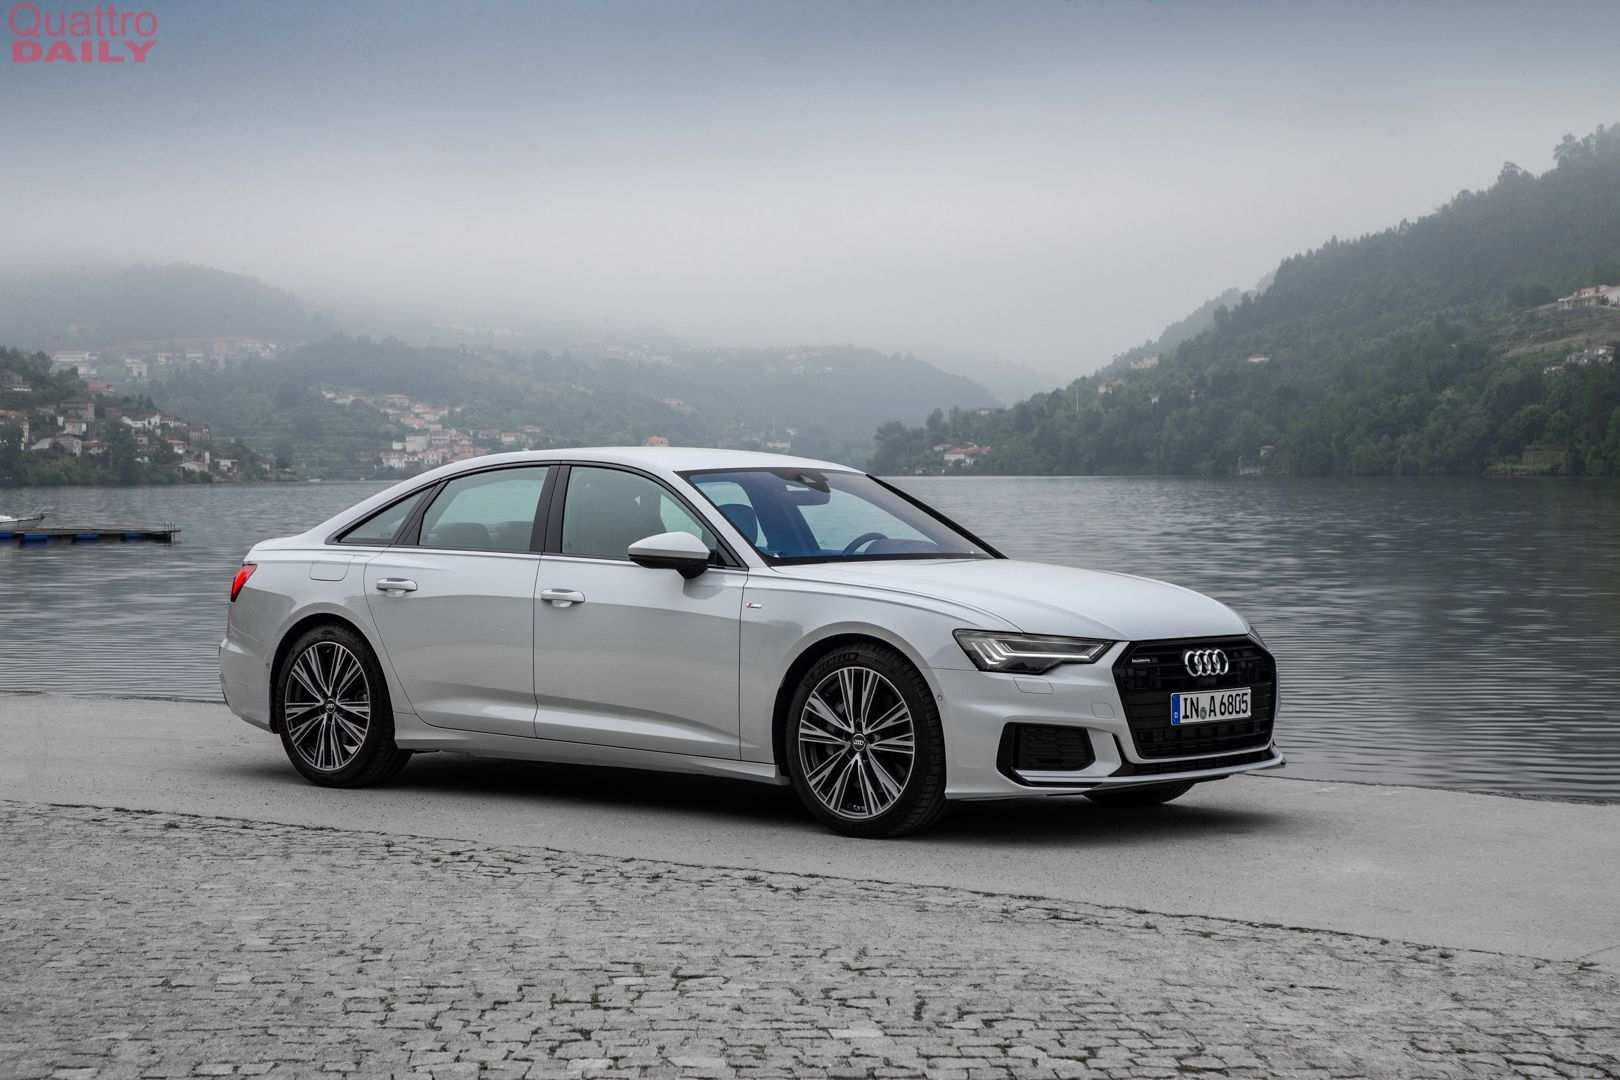 80 The Best A6 Audi 2019 Interior Rumors Photos by Best A6 Audi 2019 Interior Rumors